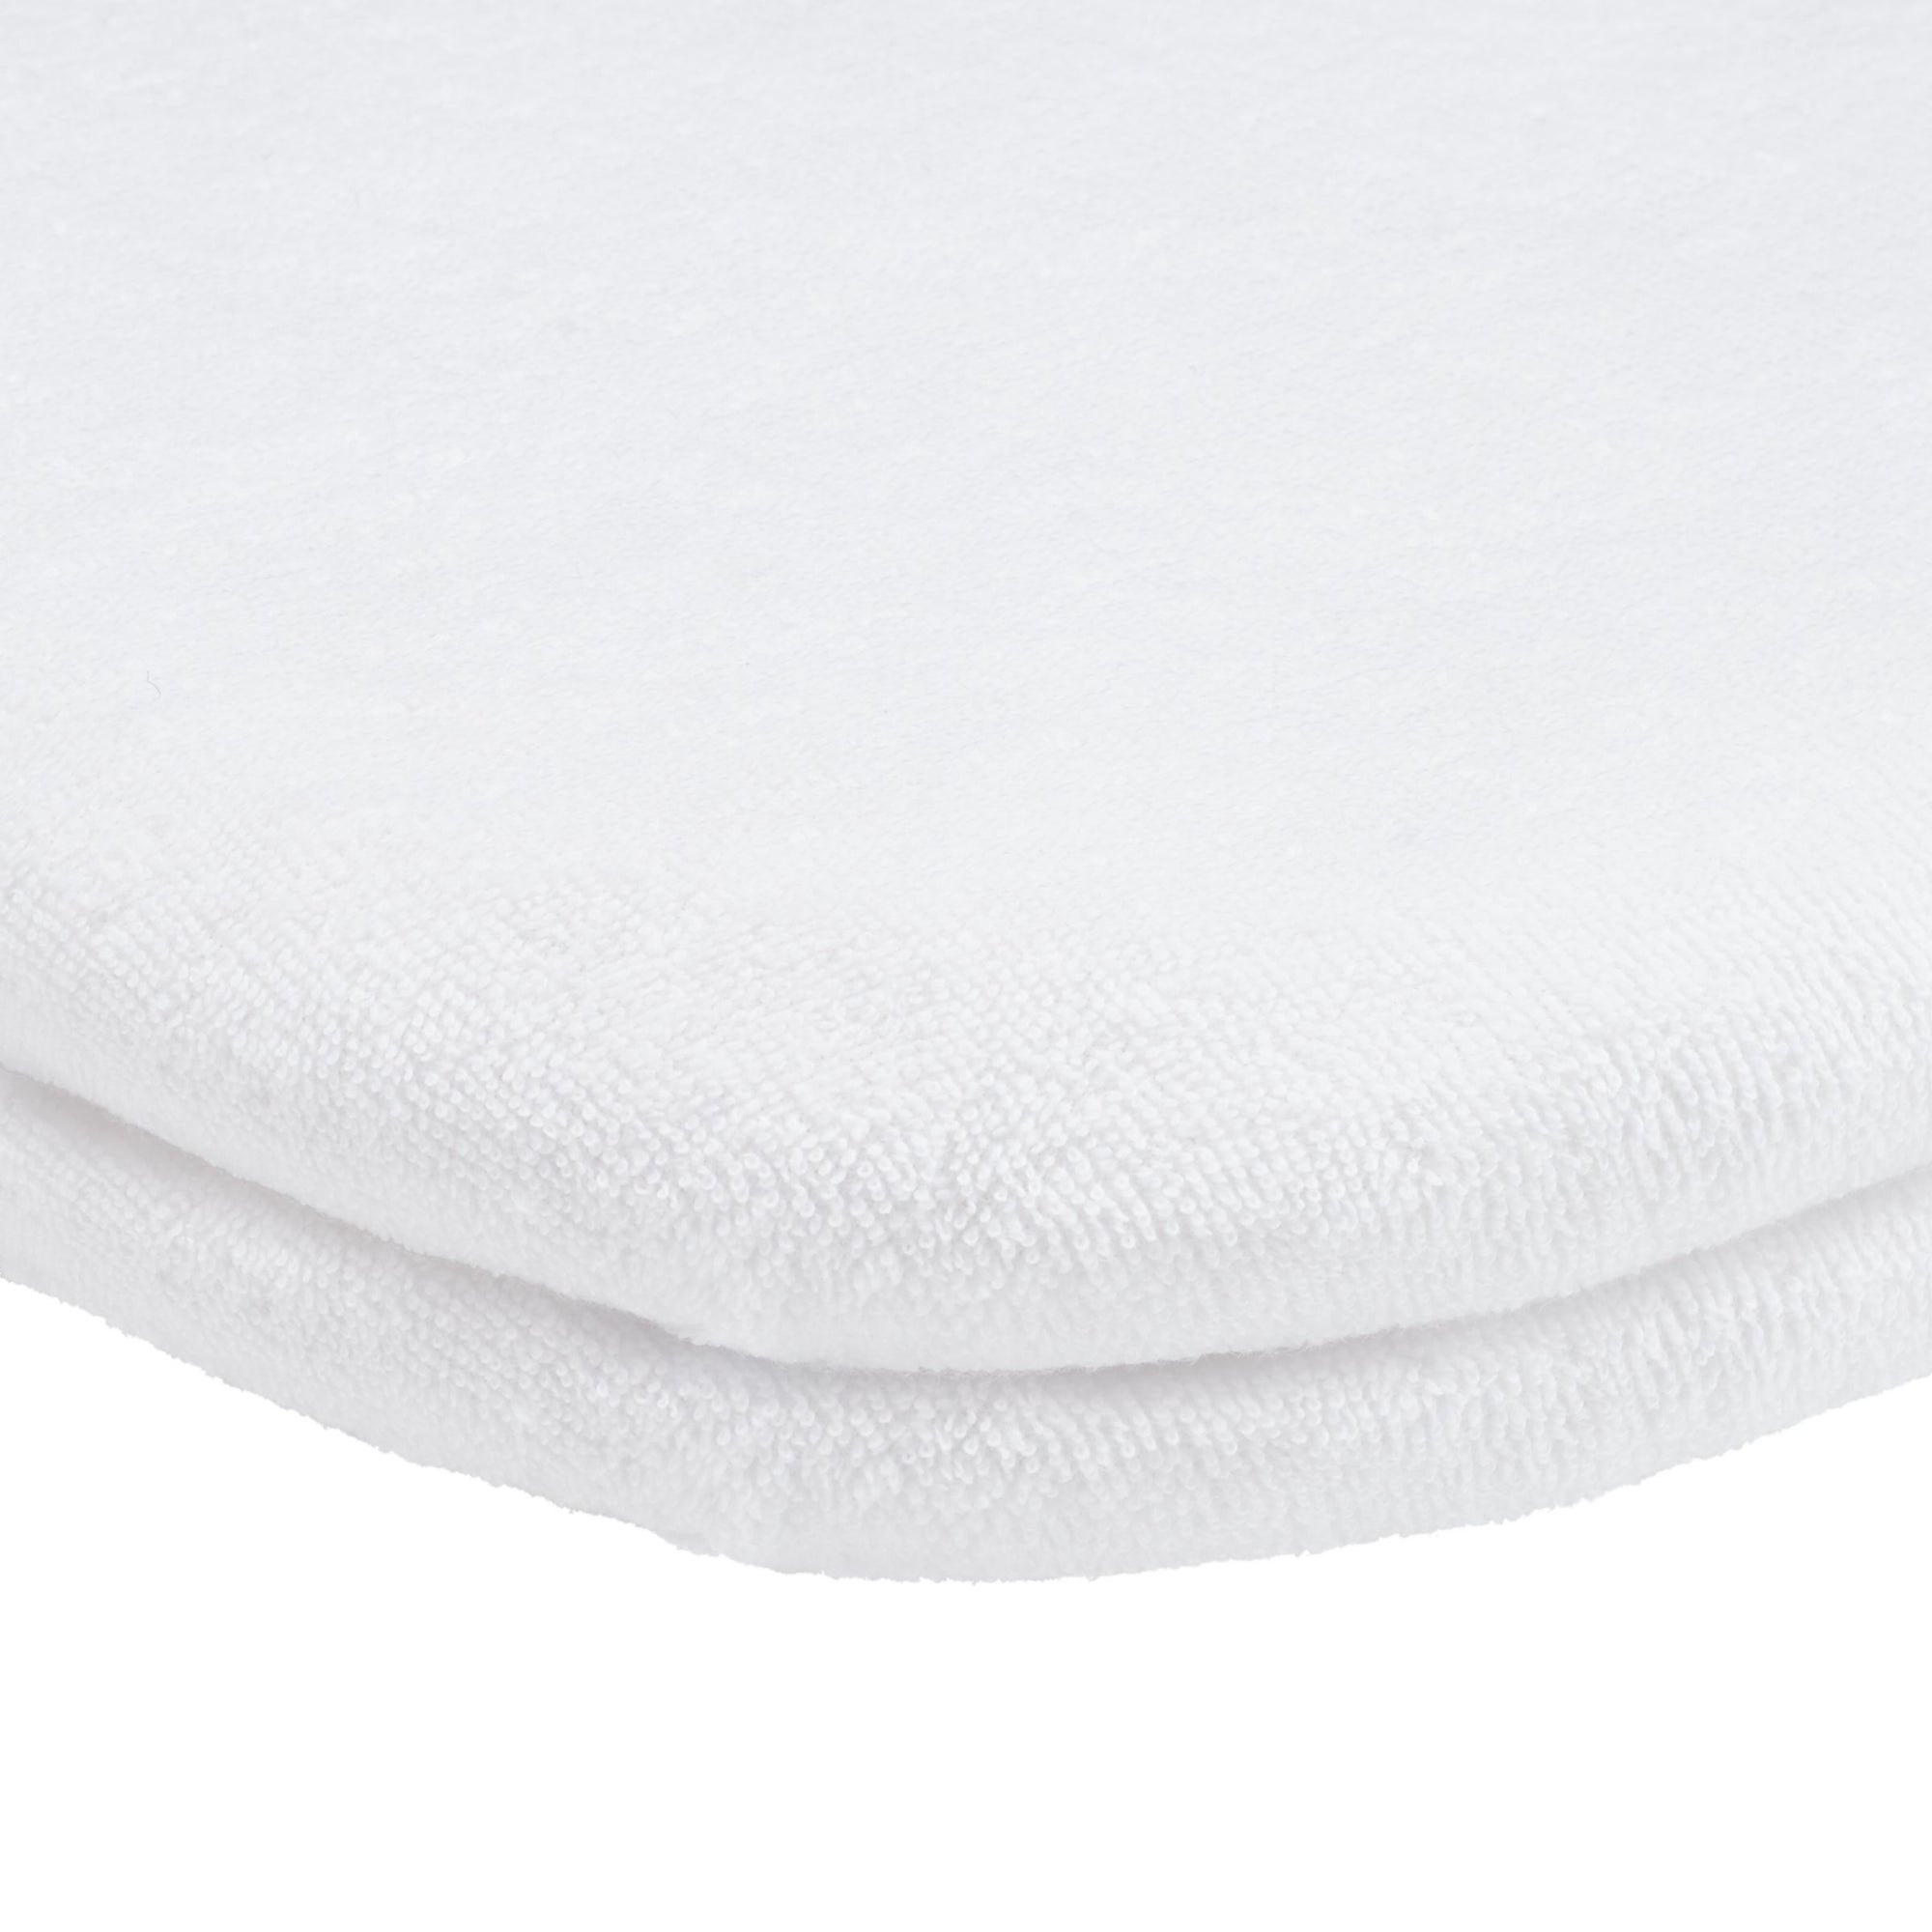 John Lewis & Partners GOTS Fitted Terry Pram Sheet, 38 x 80cm, Pack of 2, White